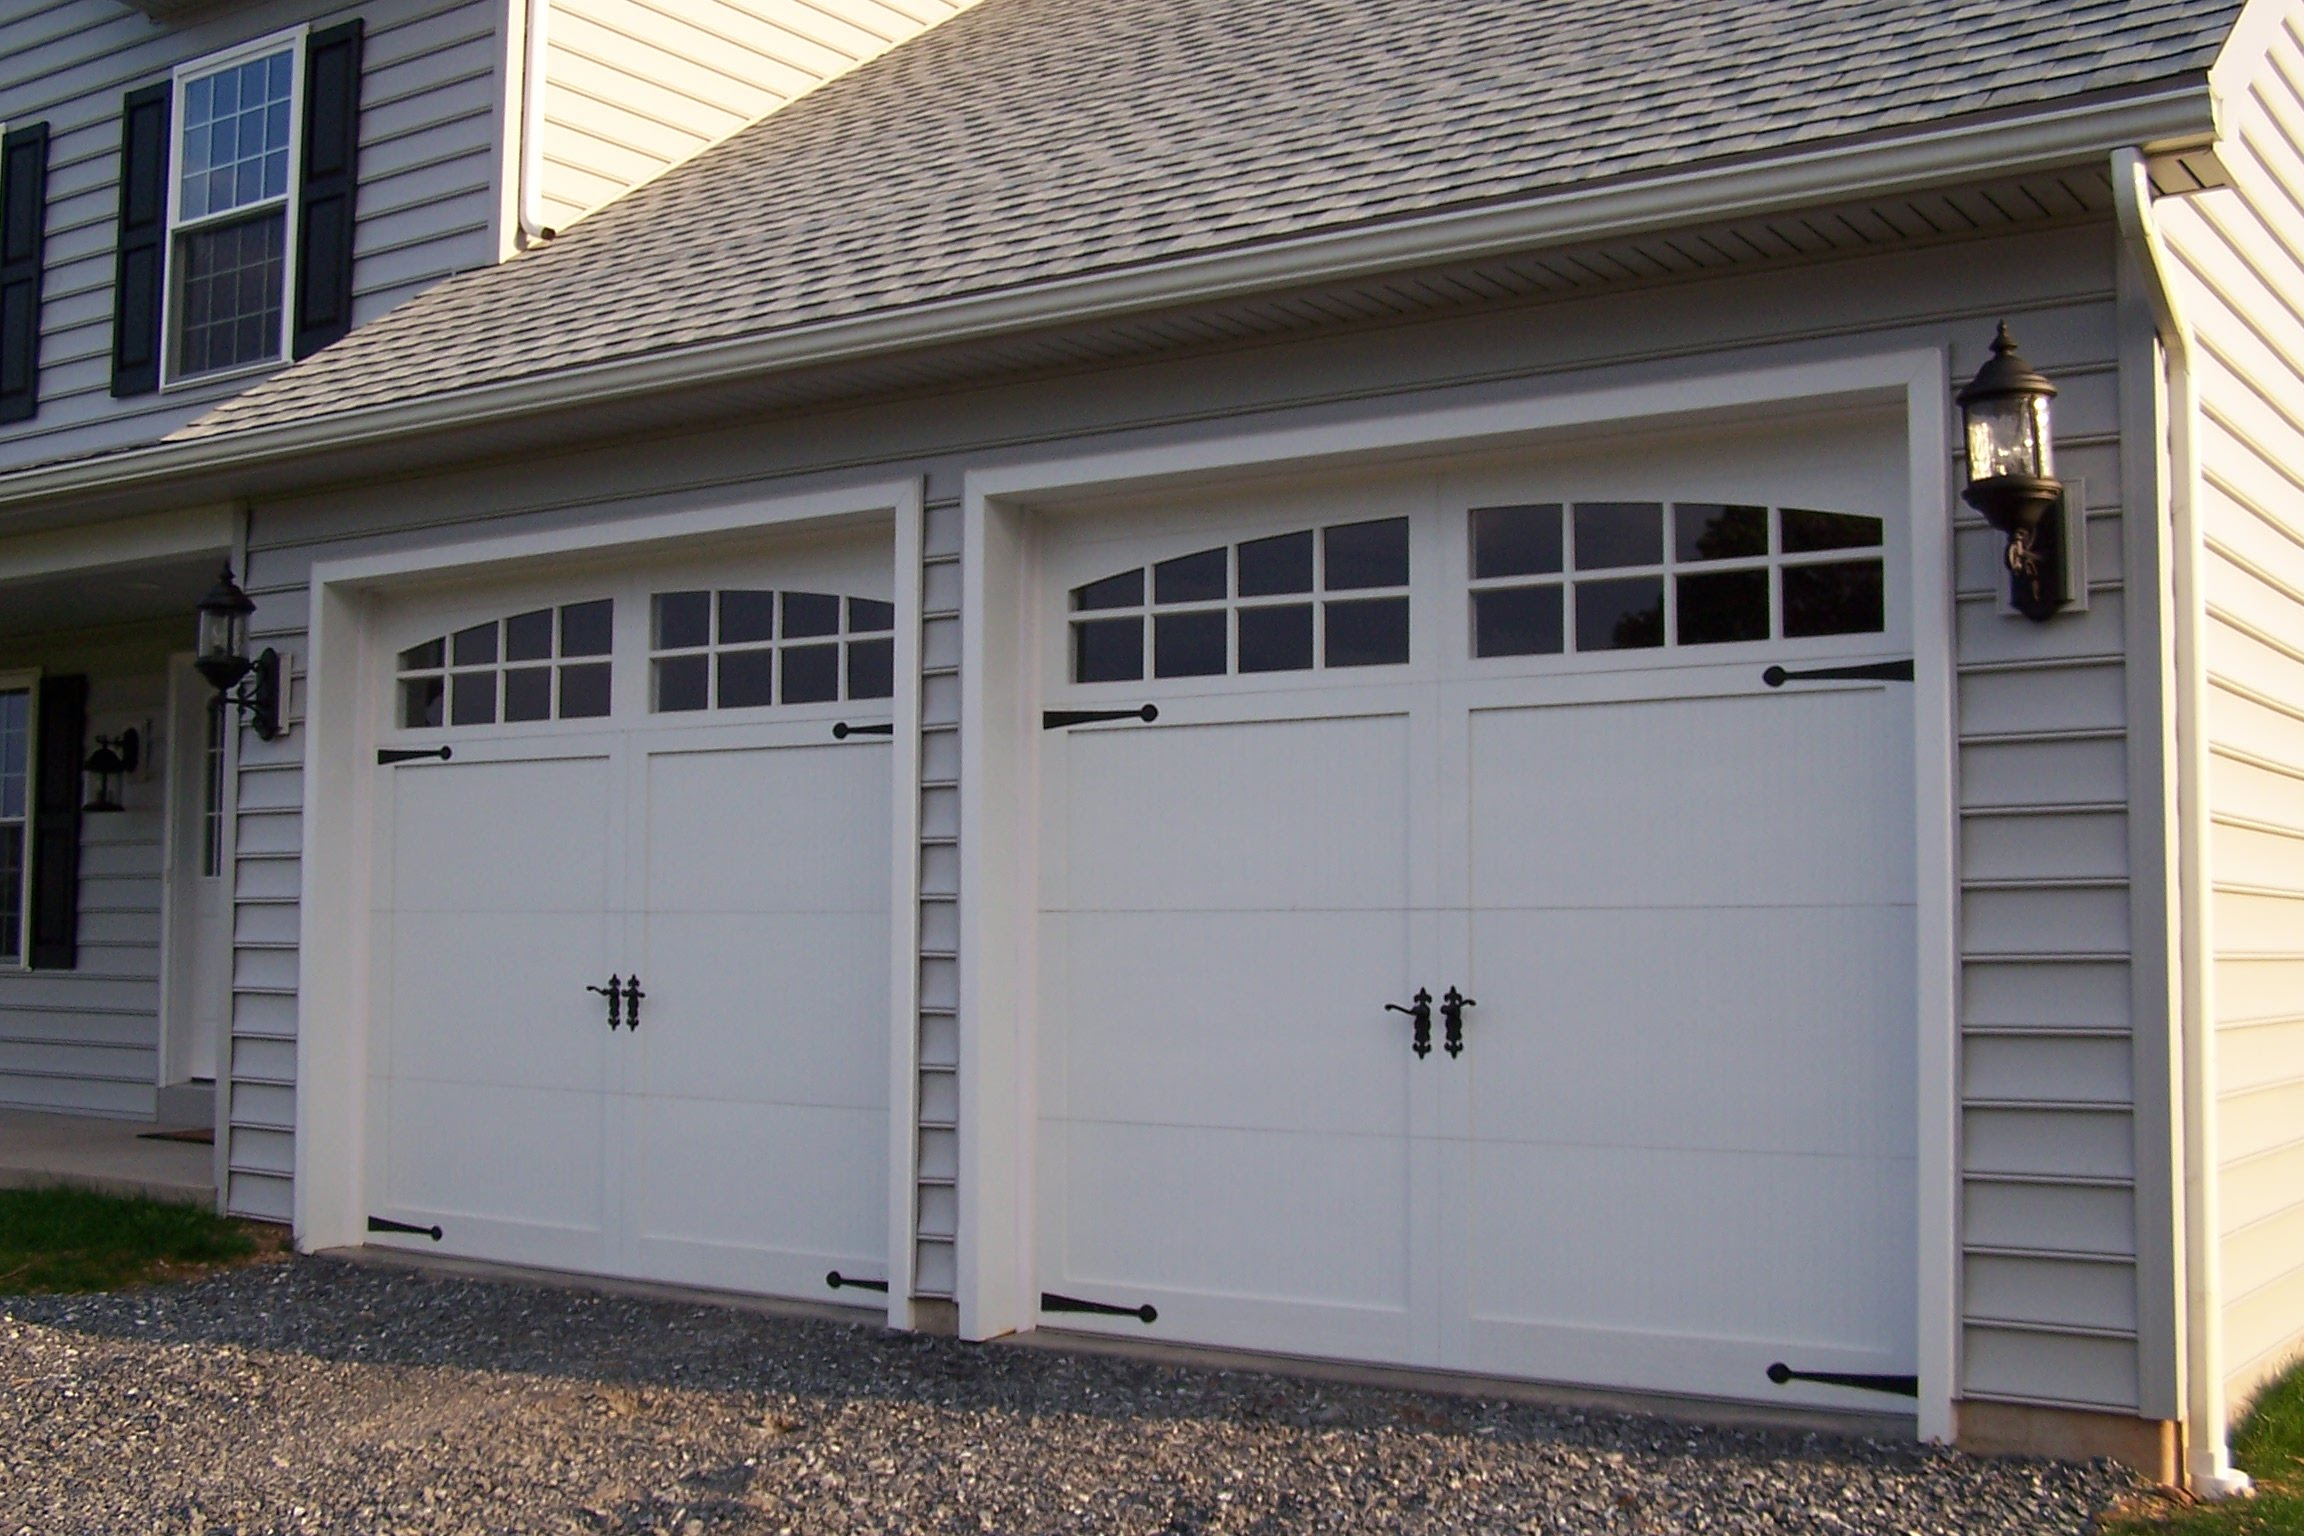 screens within door installation repair gallery sentinel island co inc plan for screen freeport garage retractable long